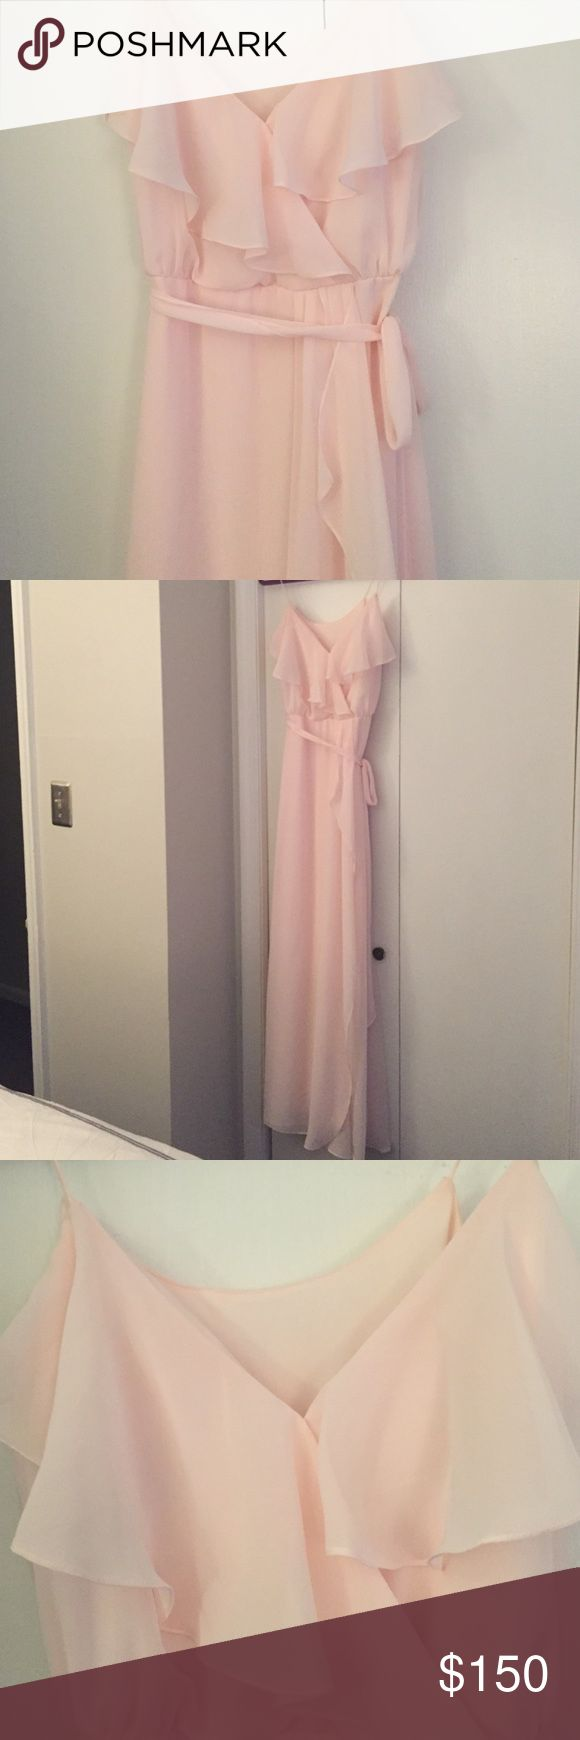 Blush Nouvelle Amsale Gown Nouvelle Amsale 'Drew' Ruffle Front Chiffon Gown in 'Peony'. Size XS, worn once. Nouvelle Amsale Dresses Wedding